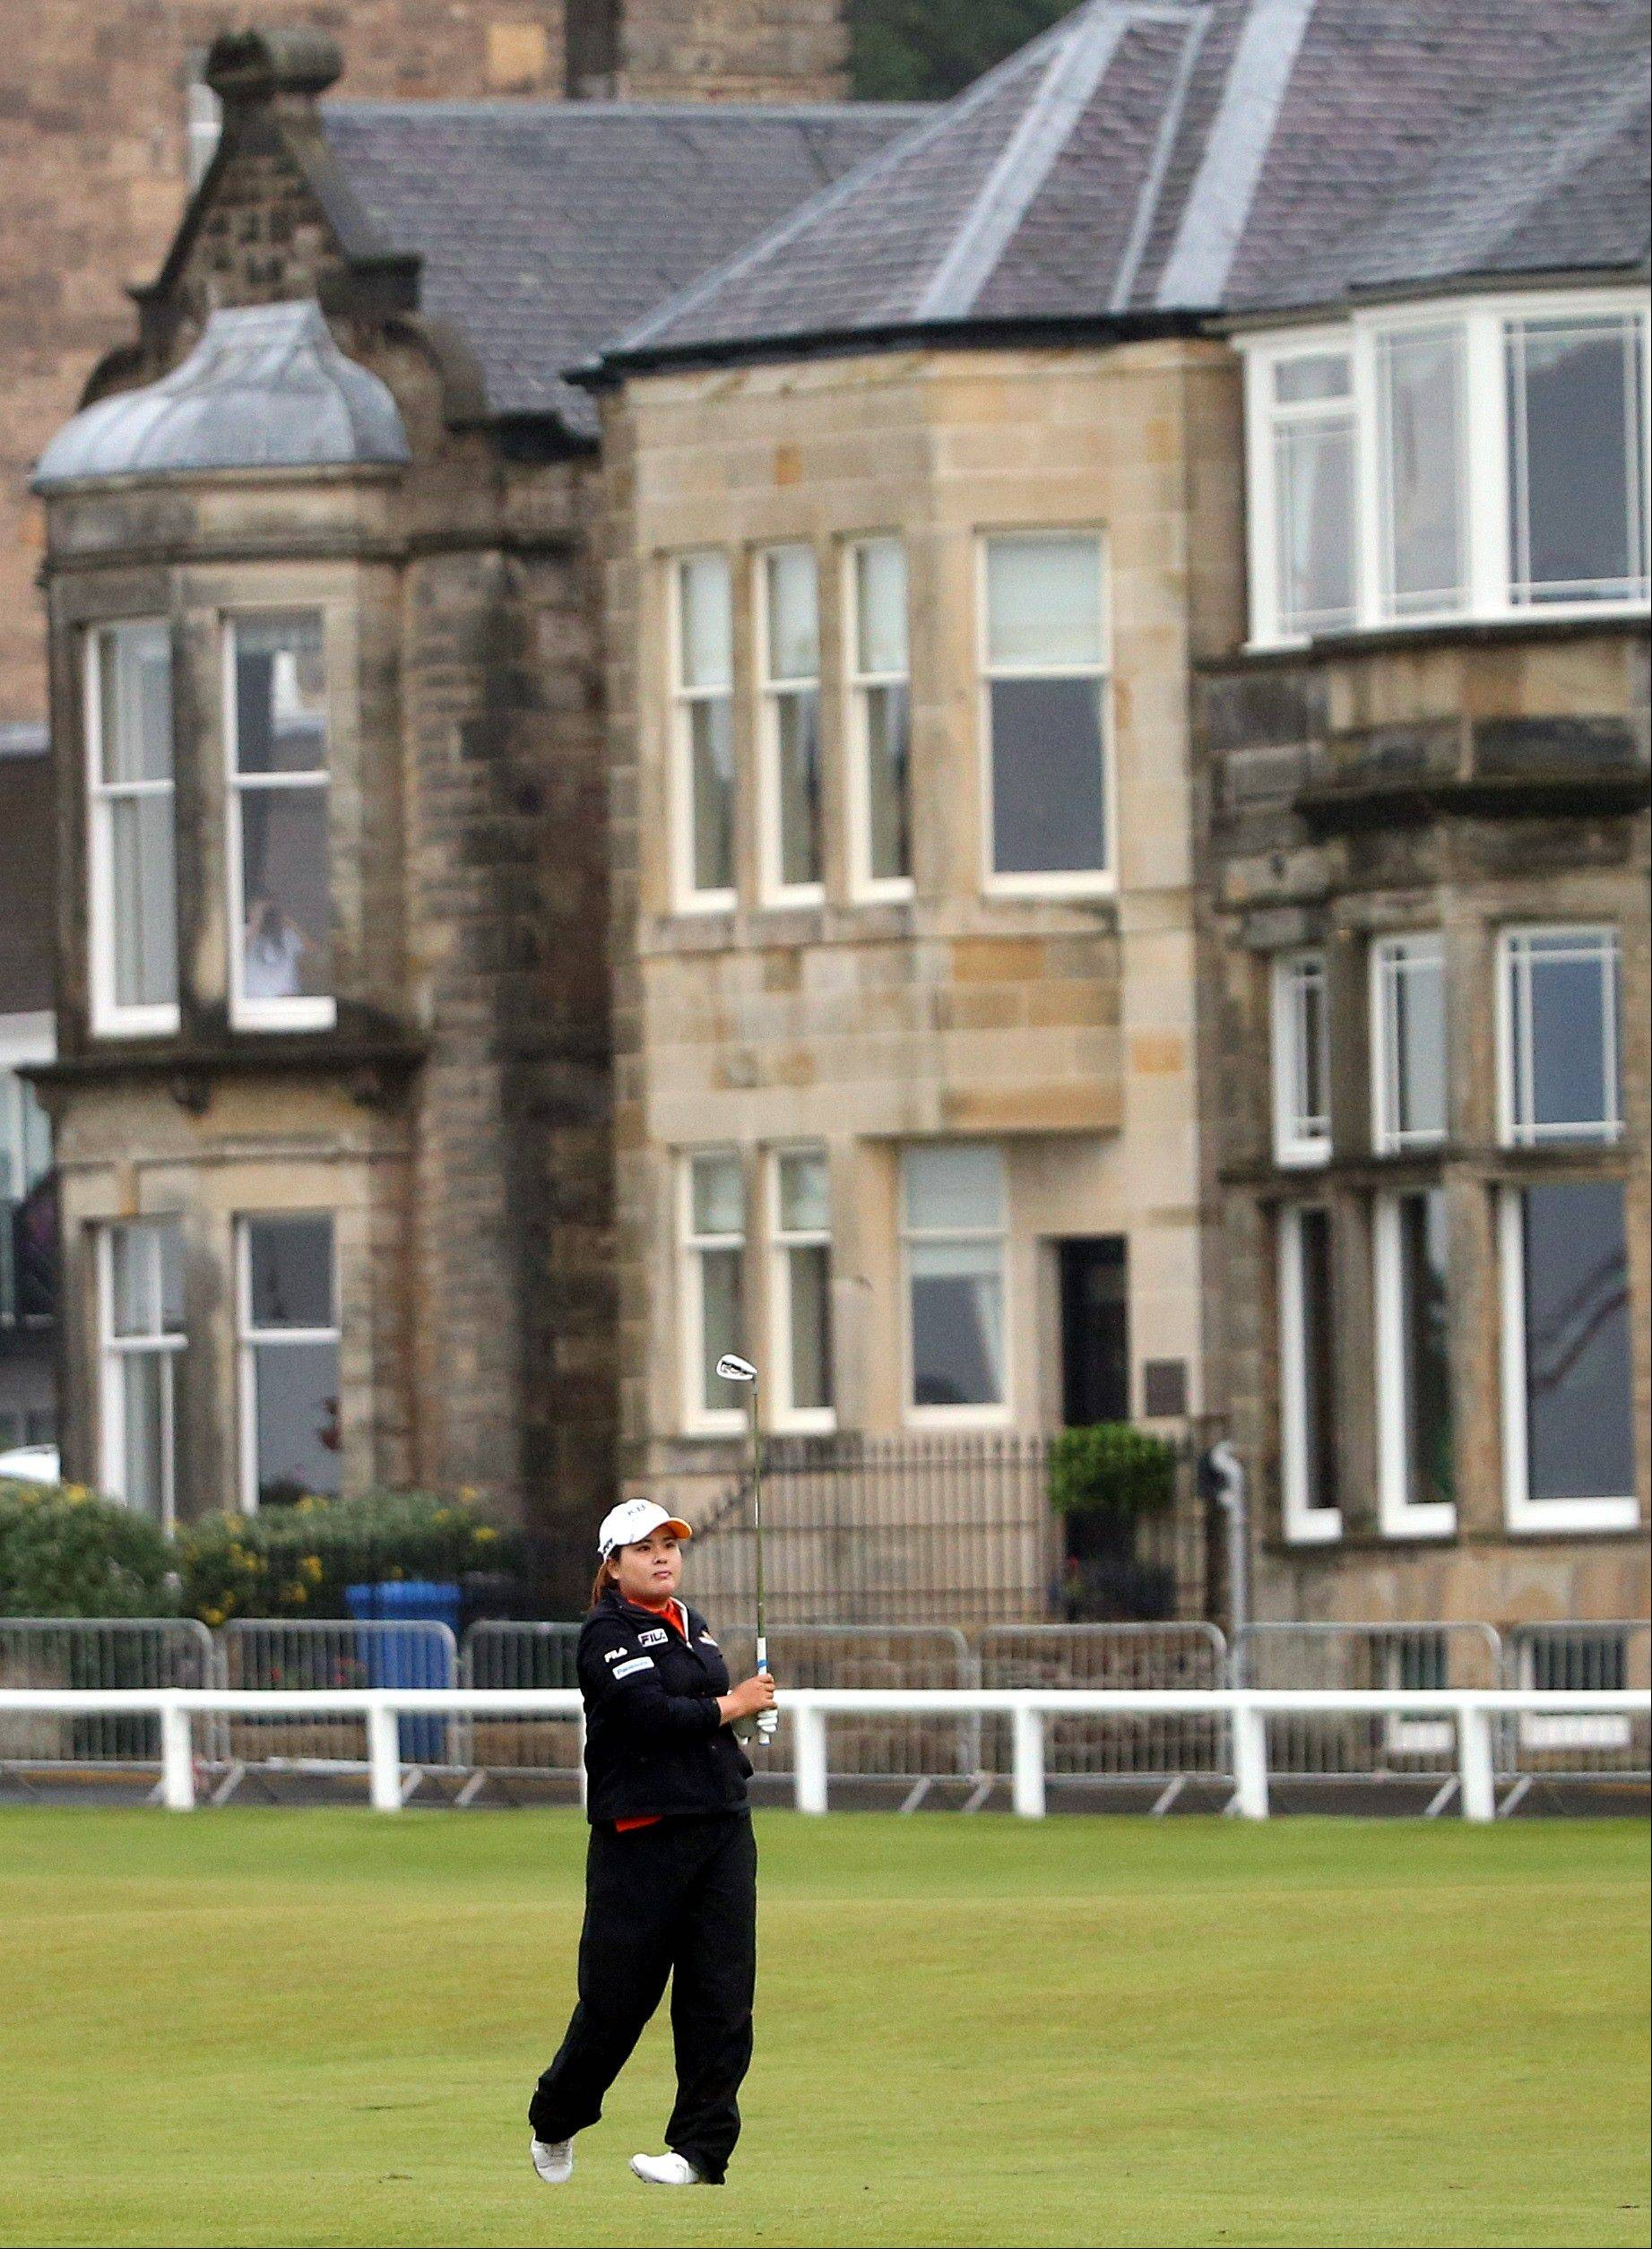 South Korea's Inbee Park watches her shot on the first fairway during the first round of the Women's British Open golf championship on the Old Course at St Andrews, Scotland, Thursday Aug. 1, 2013. (AP Photo/Scott Heppell)